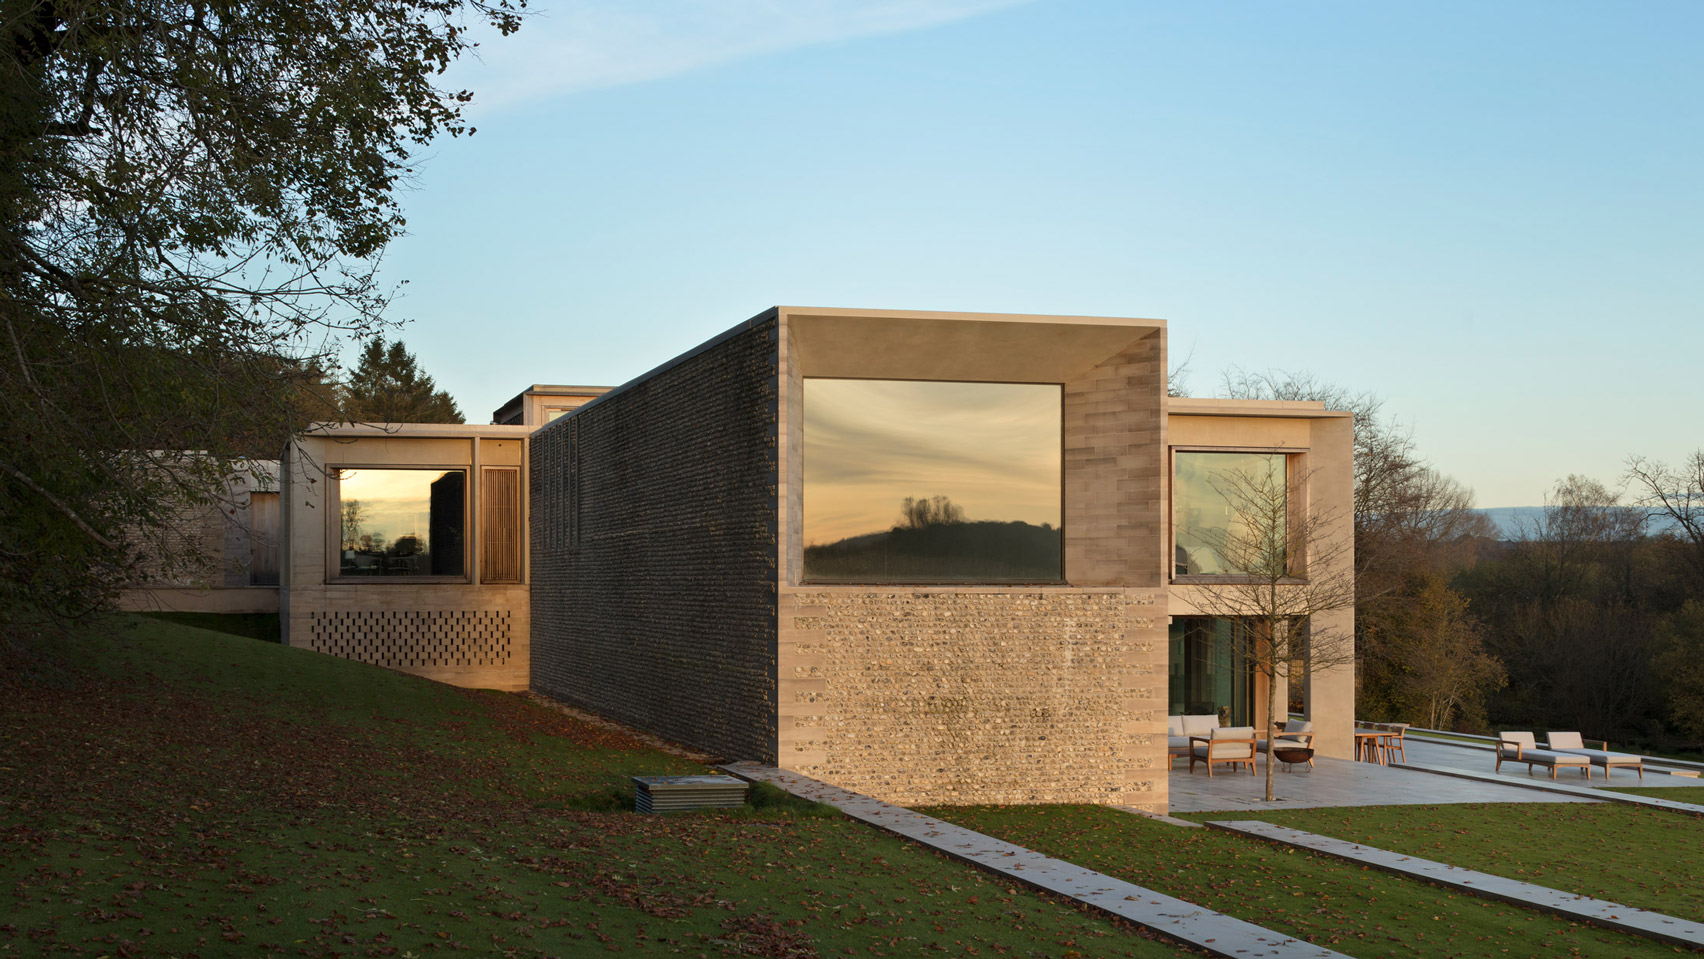 hampshire-house-niall-mclaughlin-architects-architecture-residential-england-uk_dezeen_2364_hero2